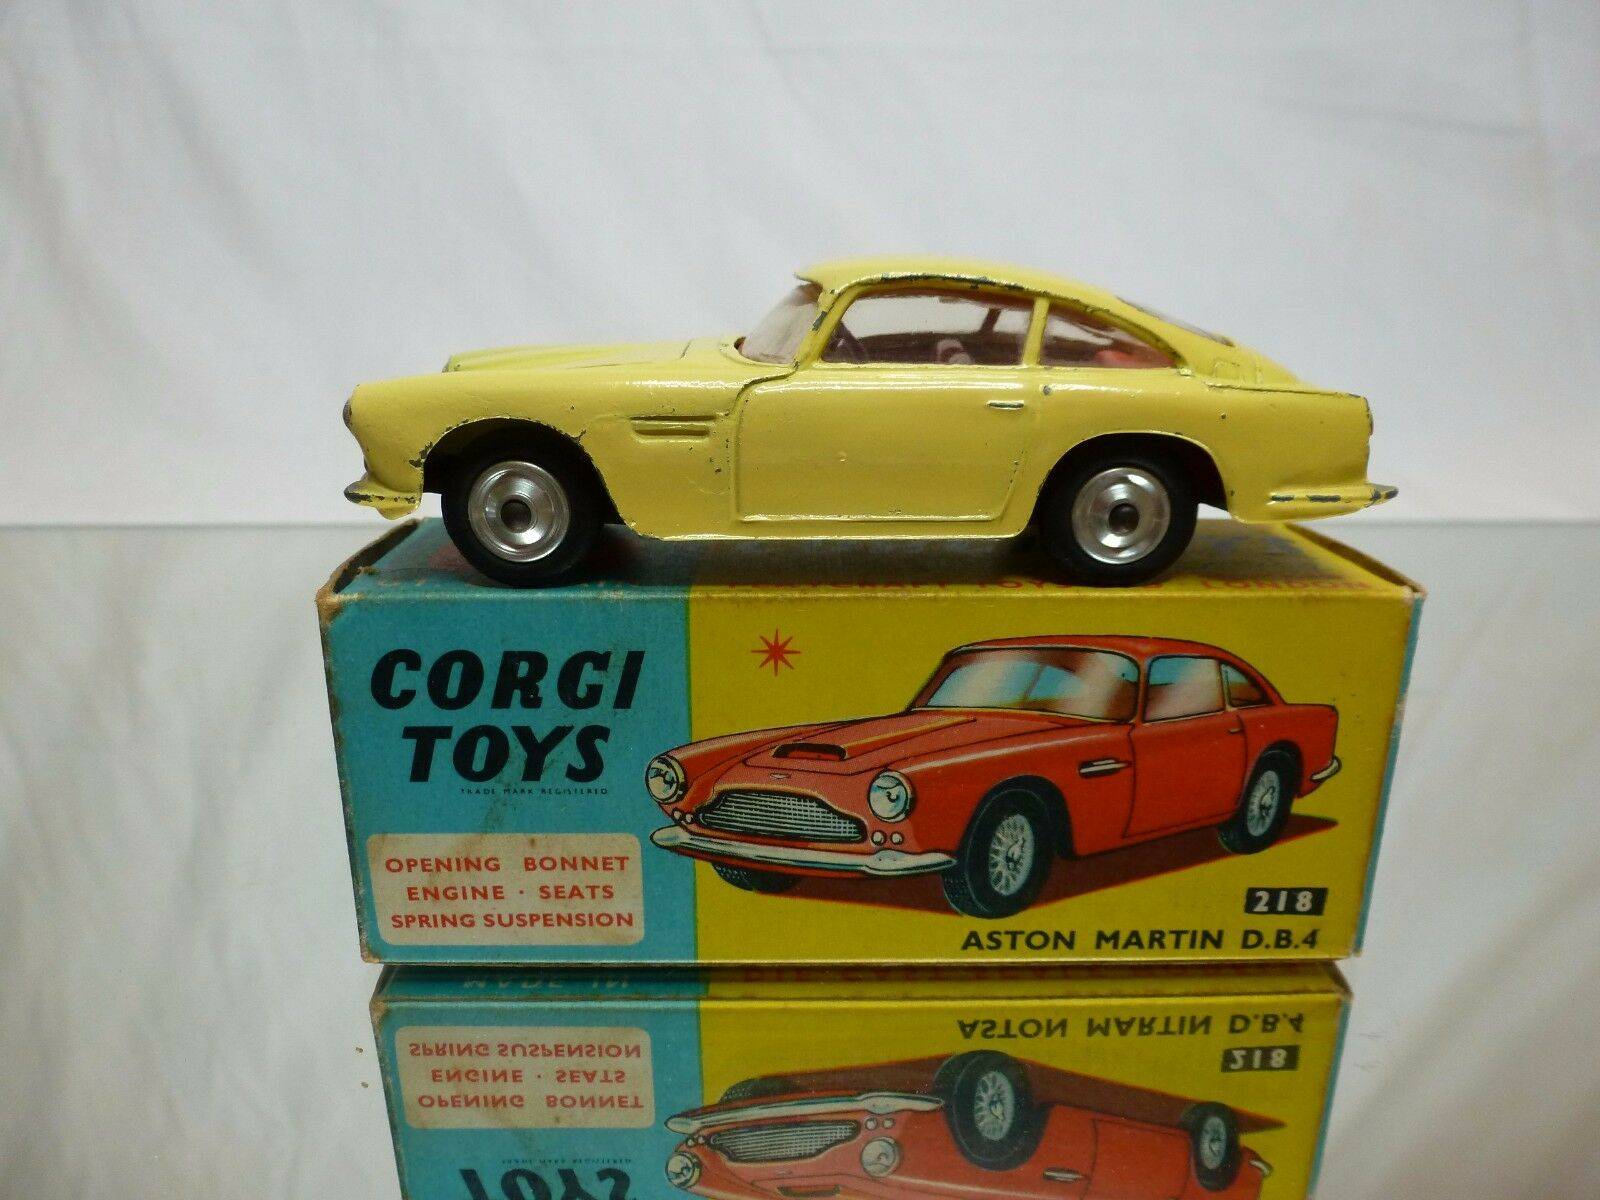 CORGI TOYS 218 ASTON MARTIN DB4 - YELLOW 1 43 - GOOD CONDITION IN BOX